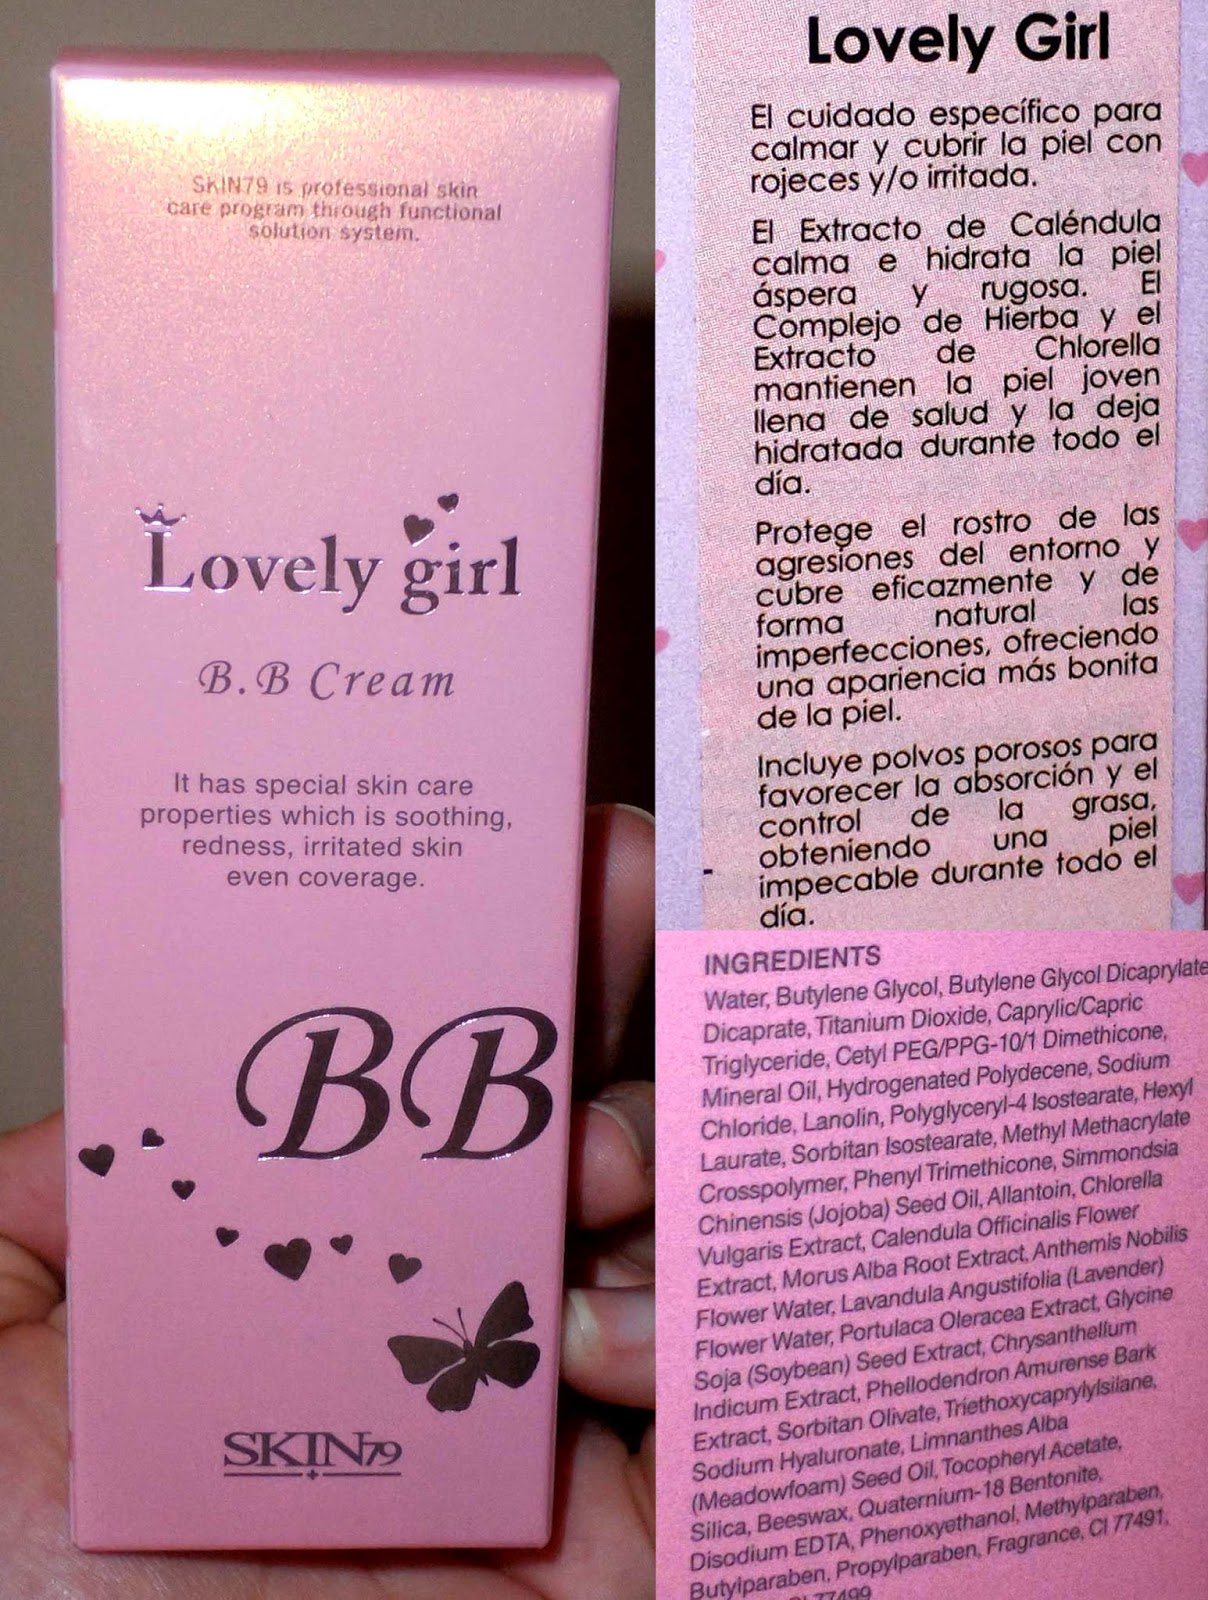 skin79 bb cream lovely girl